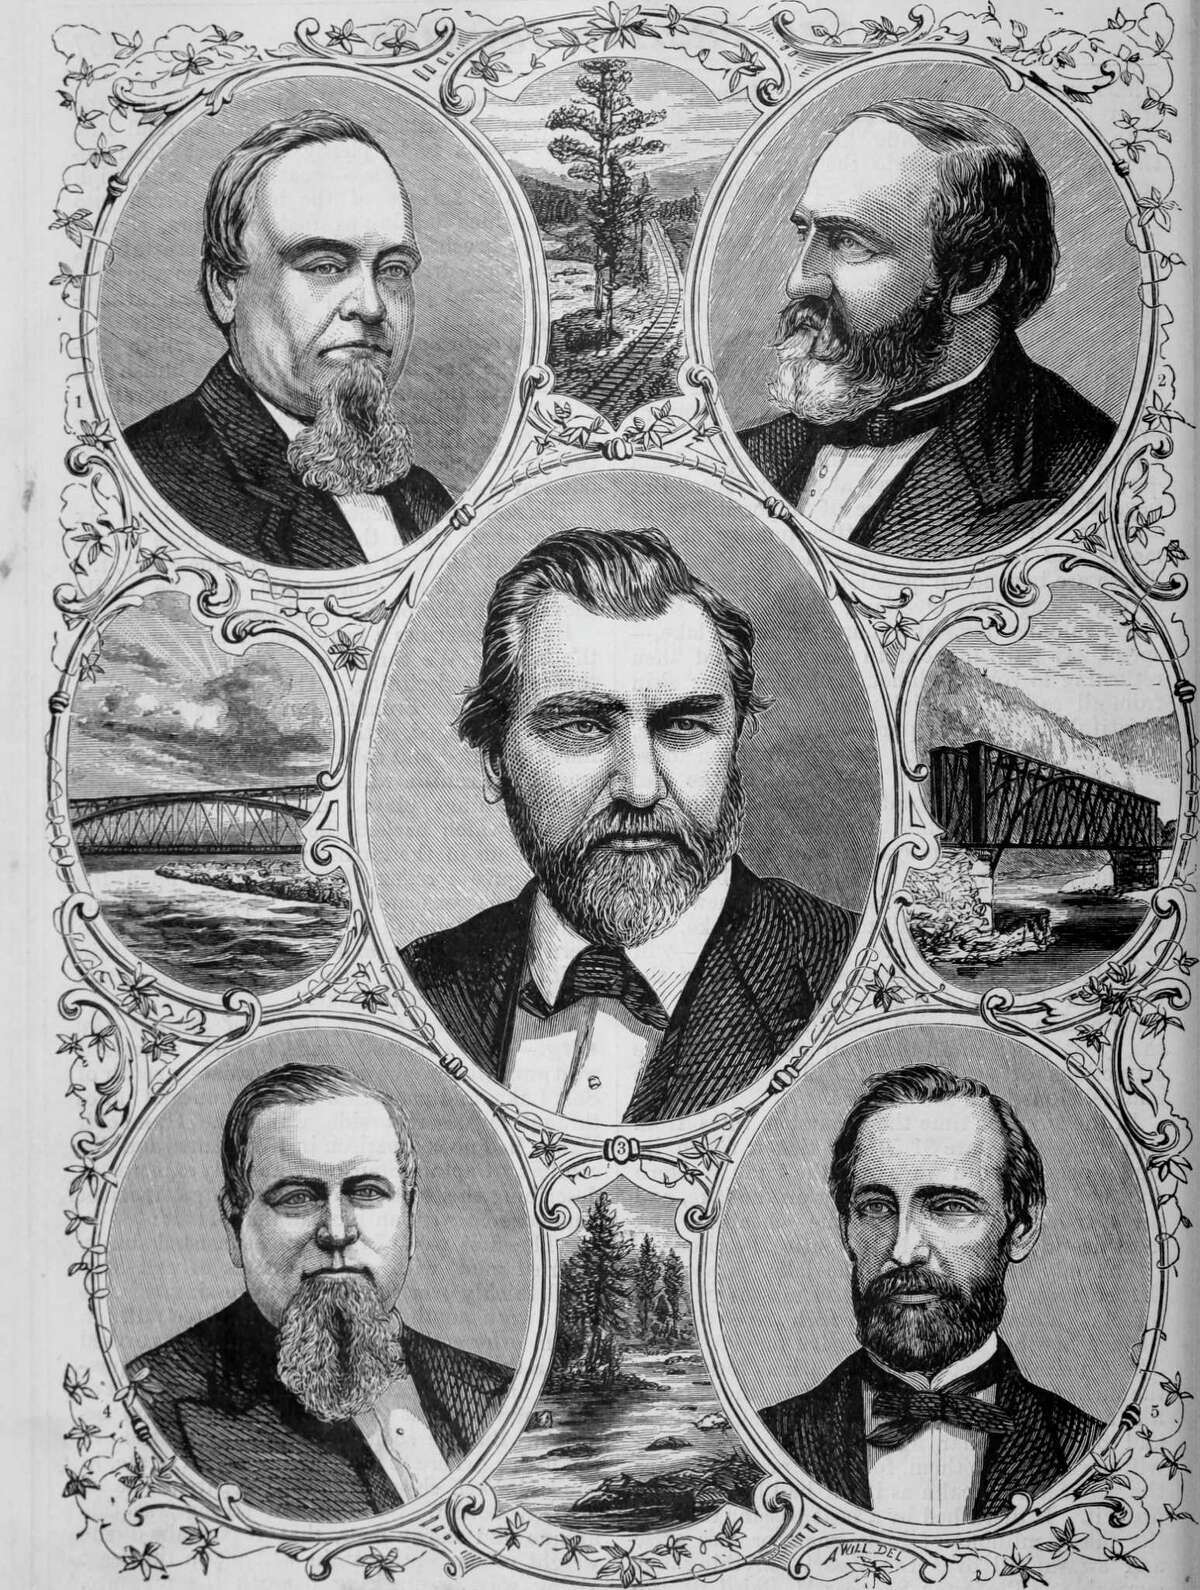 """Engraved portraits of the representative men of the Central Pacific railroad, Edwin B. Crocker, Collis Potter Huntington, Leland Stanford, Charles Crocker, and Mark Hopkins, from the book """"The Pacific tourist"""", 1877. Courtesy Internet Archive."""